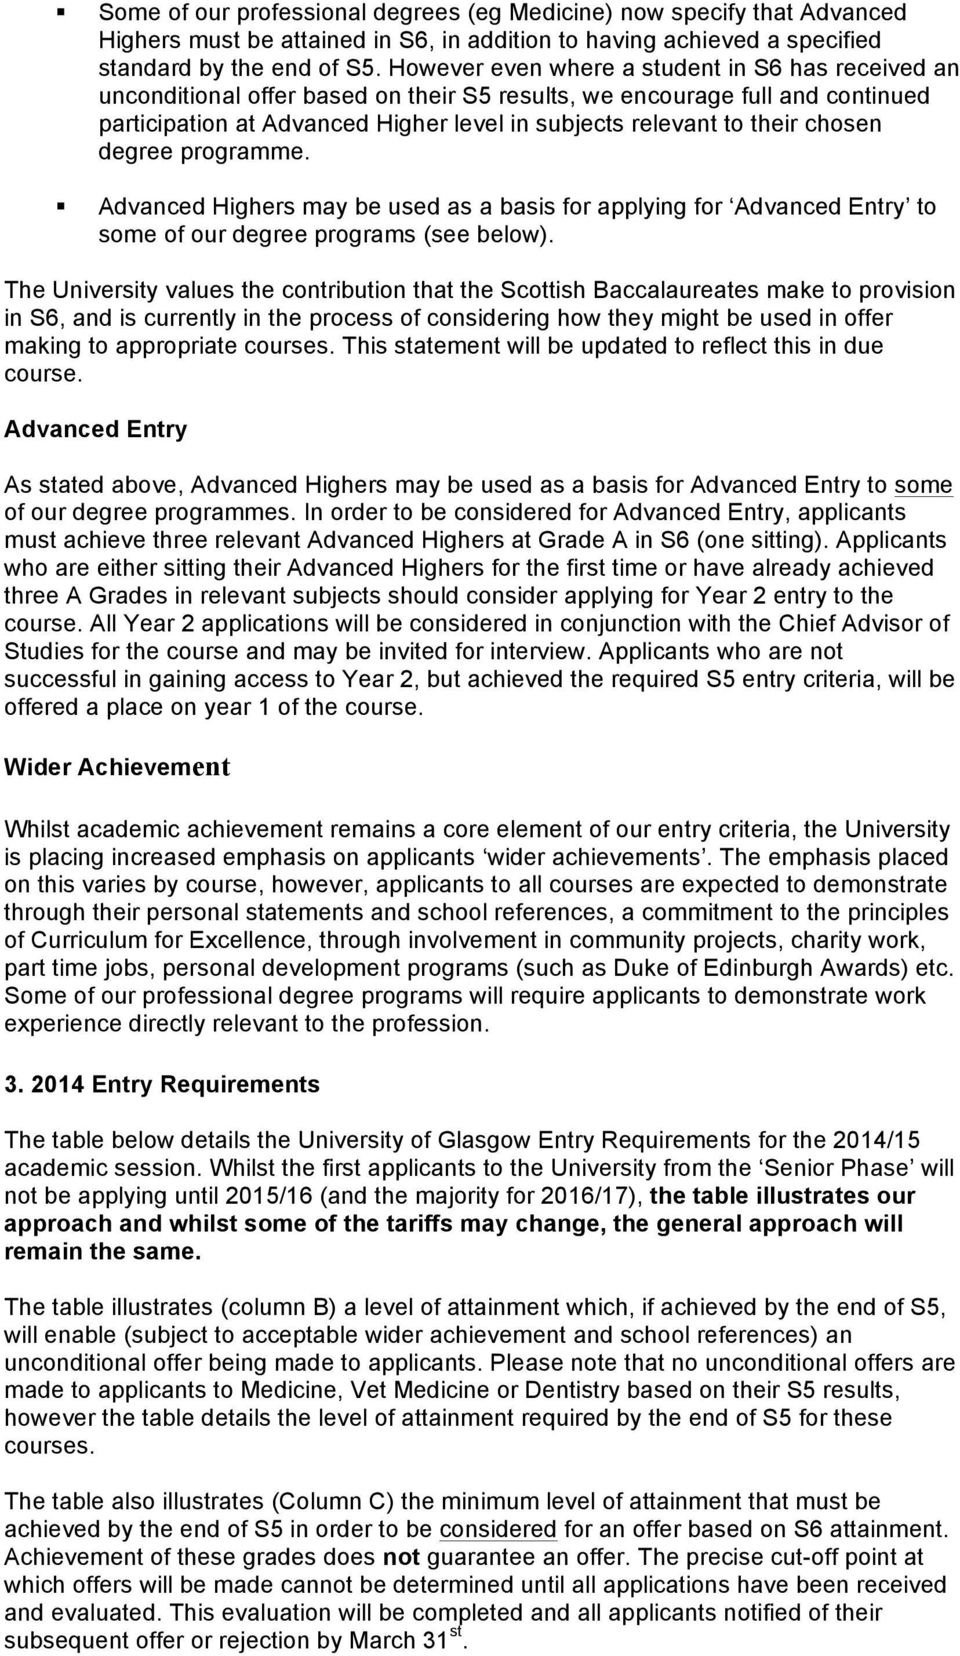 degree programme. Advanced s may be used as a basis for applying for Advanced Entry to some of our degree programs (see below).